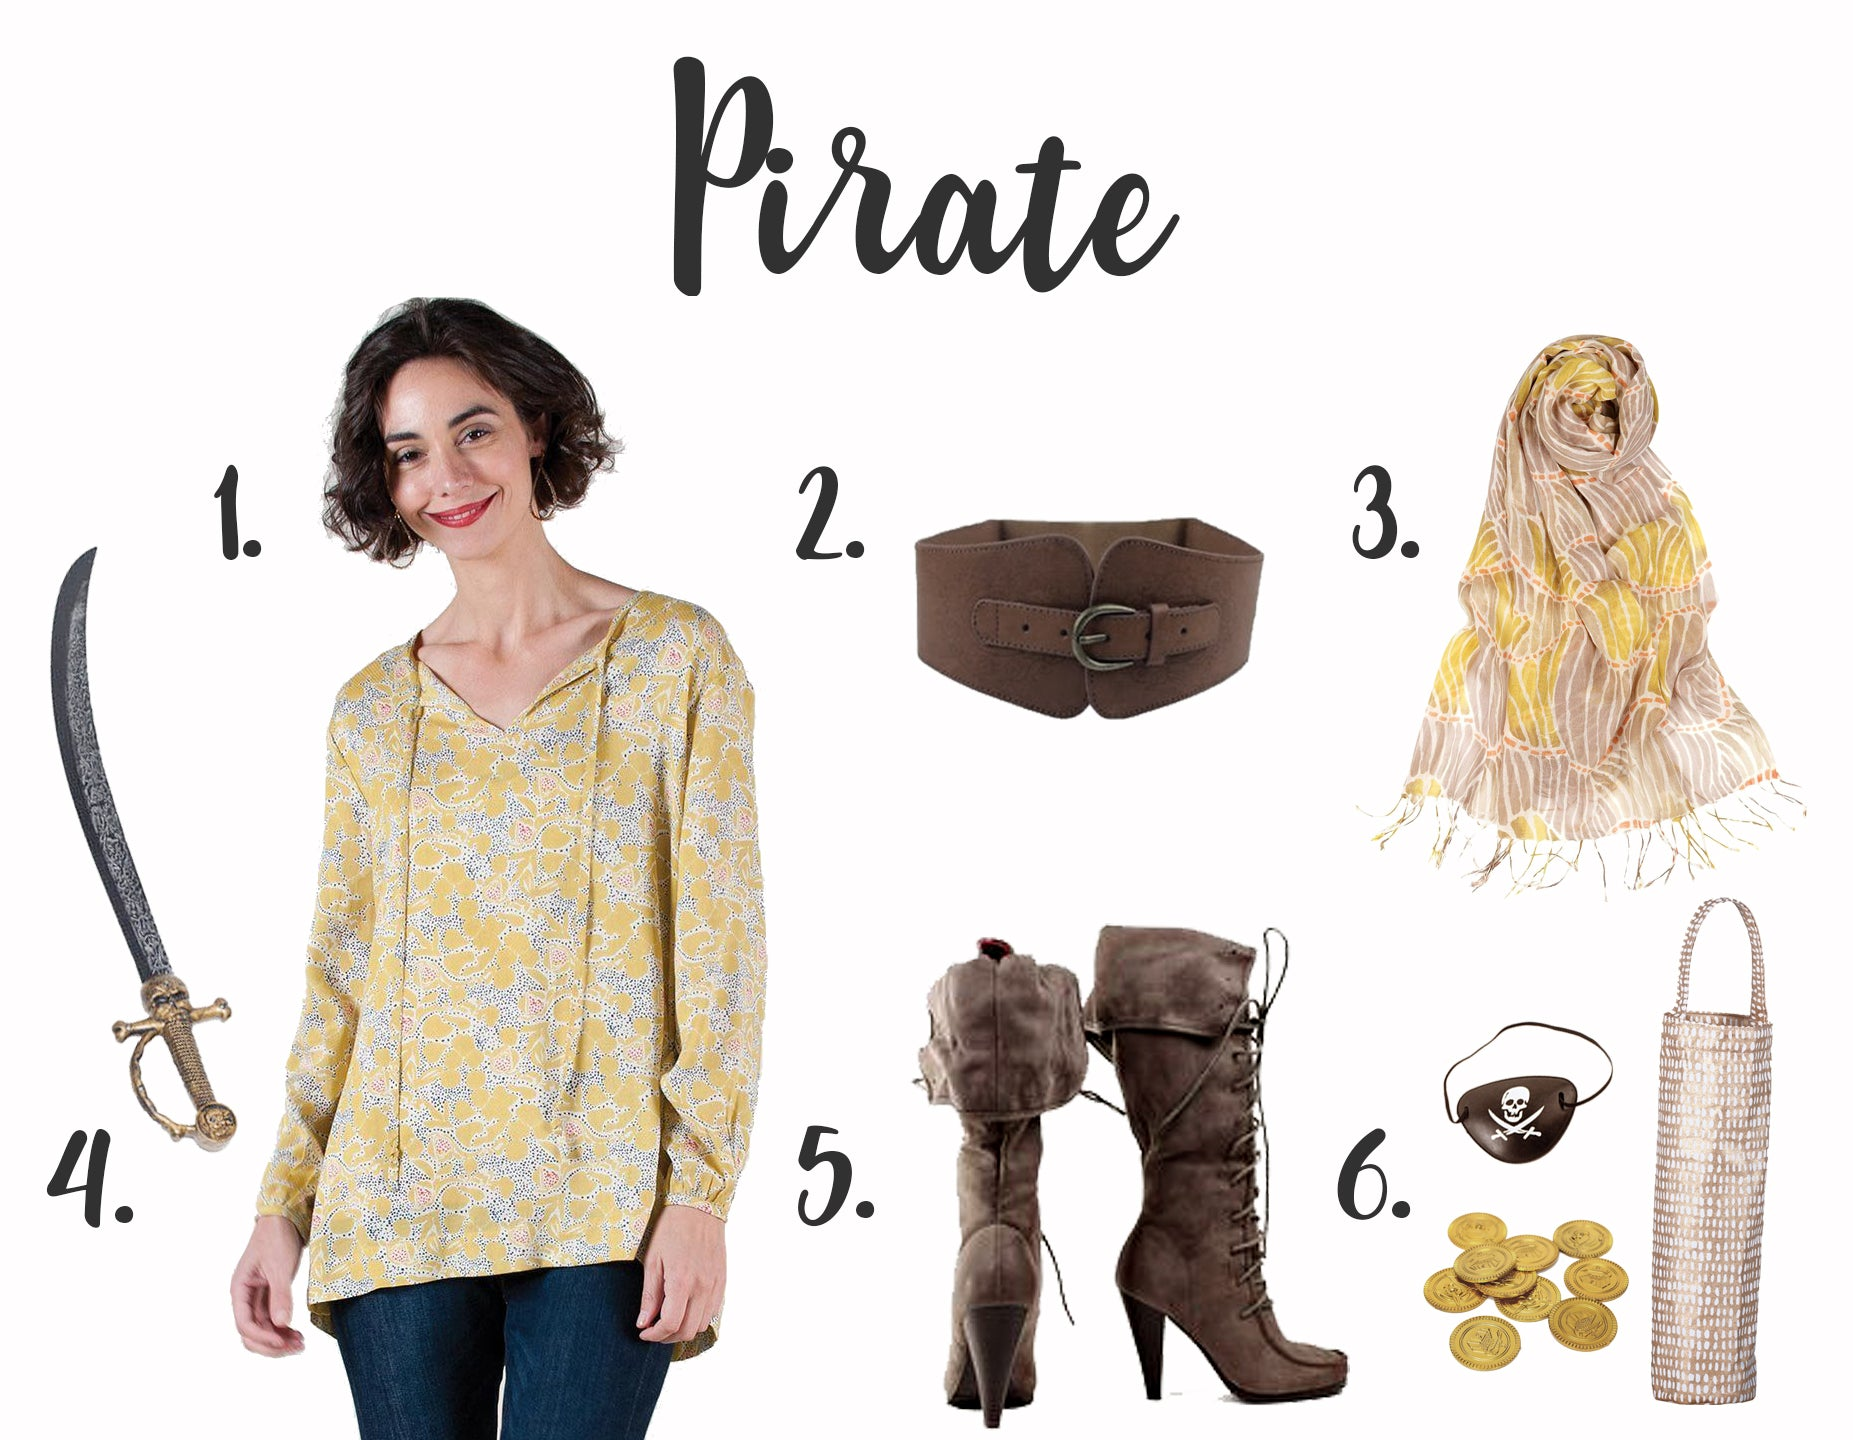 pirate costume for women with stylish yellow peasant blouse and patterned scarf